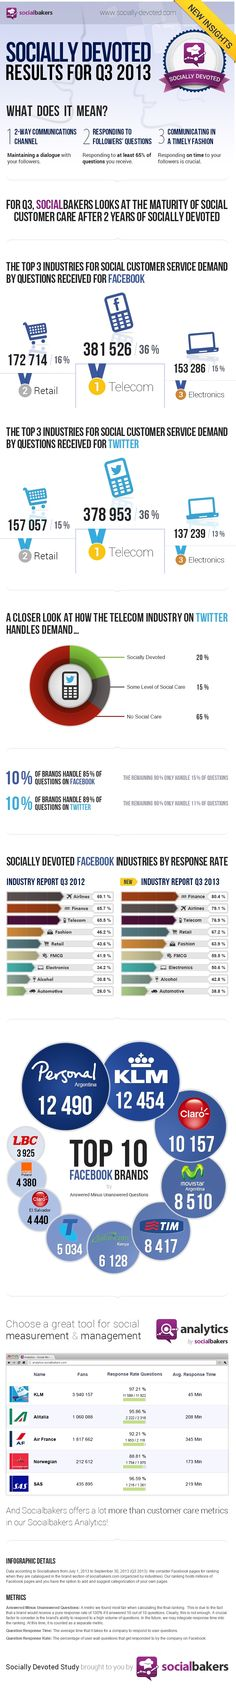 INFOGRAPHIC: Which industries and brands excel at answering questions on Facebook? - AllFacebook